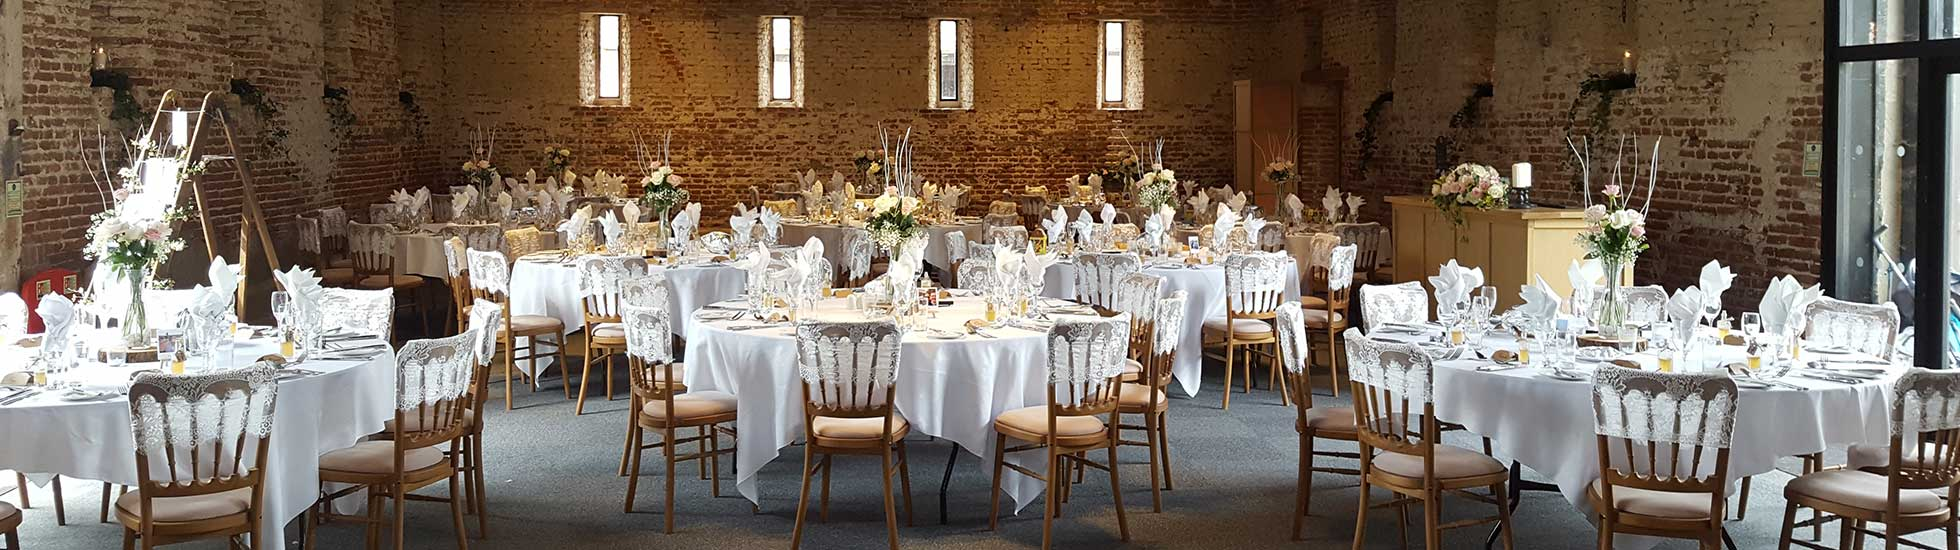 Beautiful bare brickwork inside the wedding venue The Great Lodge, Great Bardfield, Essex / Photo By Weddings By Mary